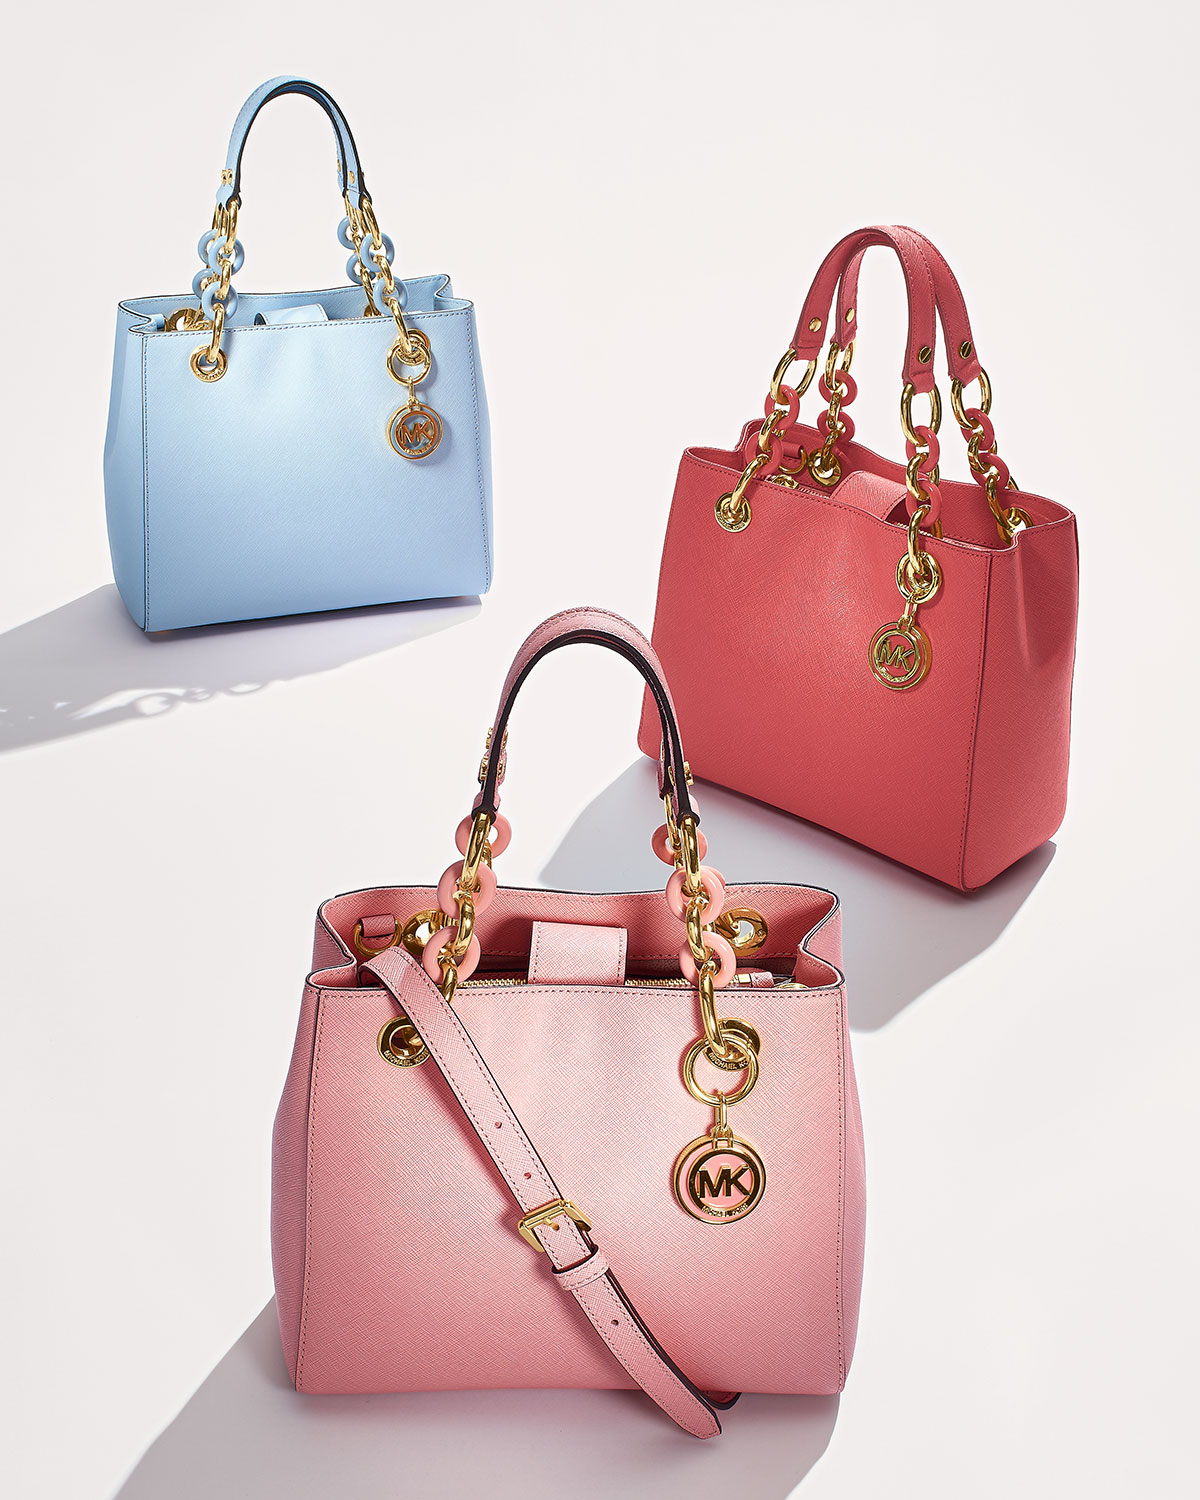 87016729ce67 ... discount code for lyst michael kors cynthia small satchel bag in blue  3e5d2 7ba65